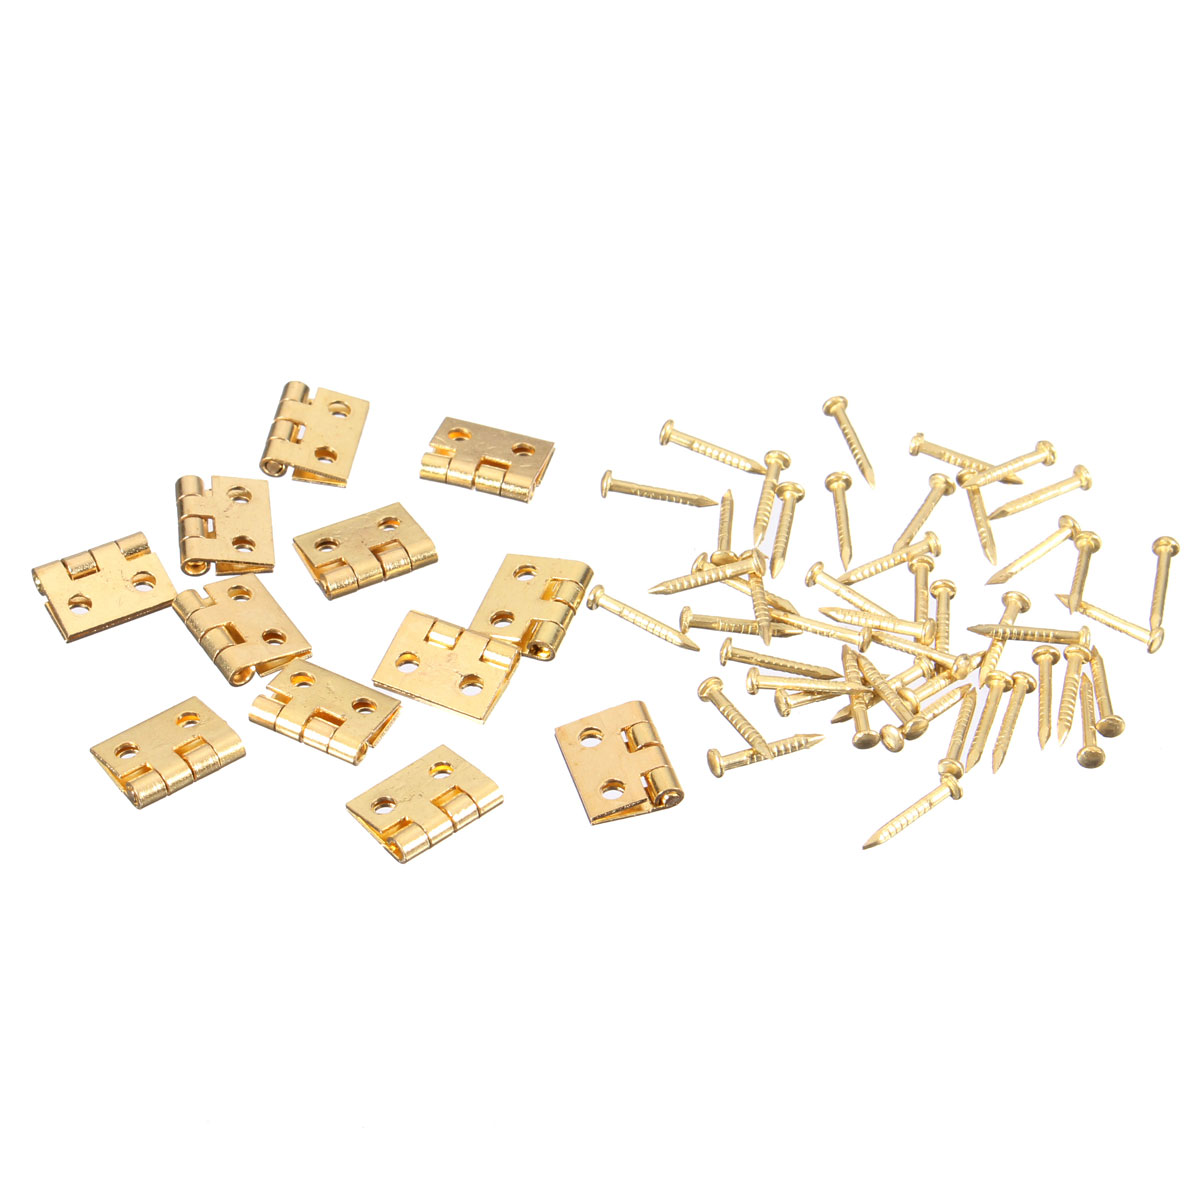 12 set mini metal hinges with approx 48 screws for barbie jewelry box repairing doll barbie dollhouse furniture cheap